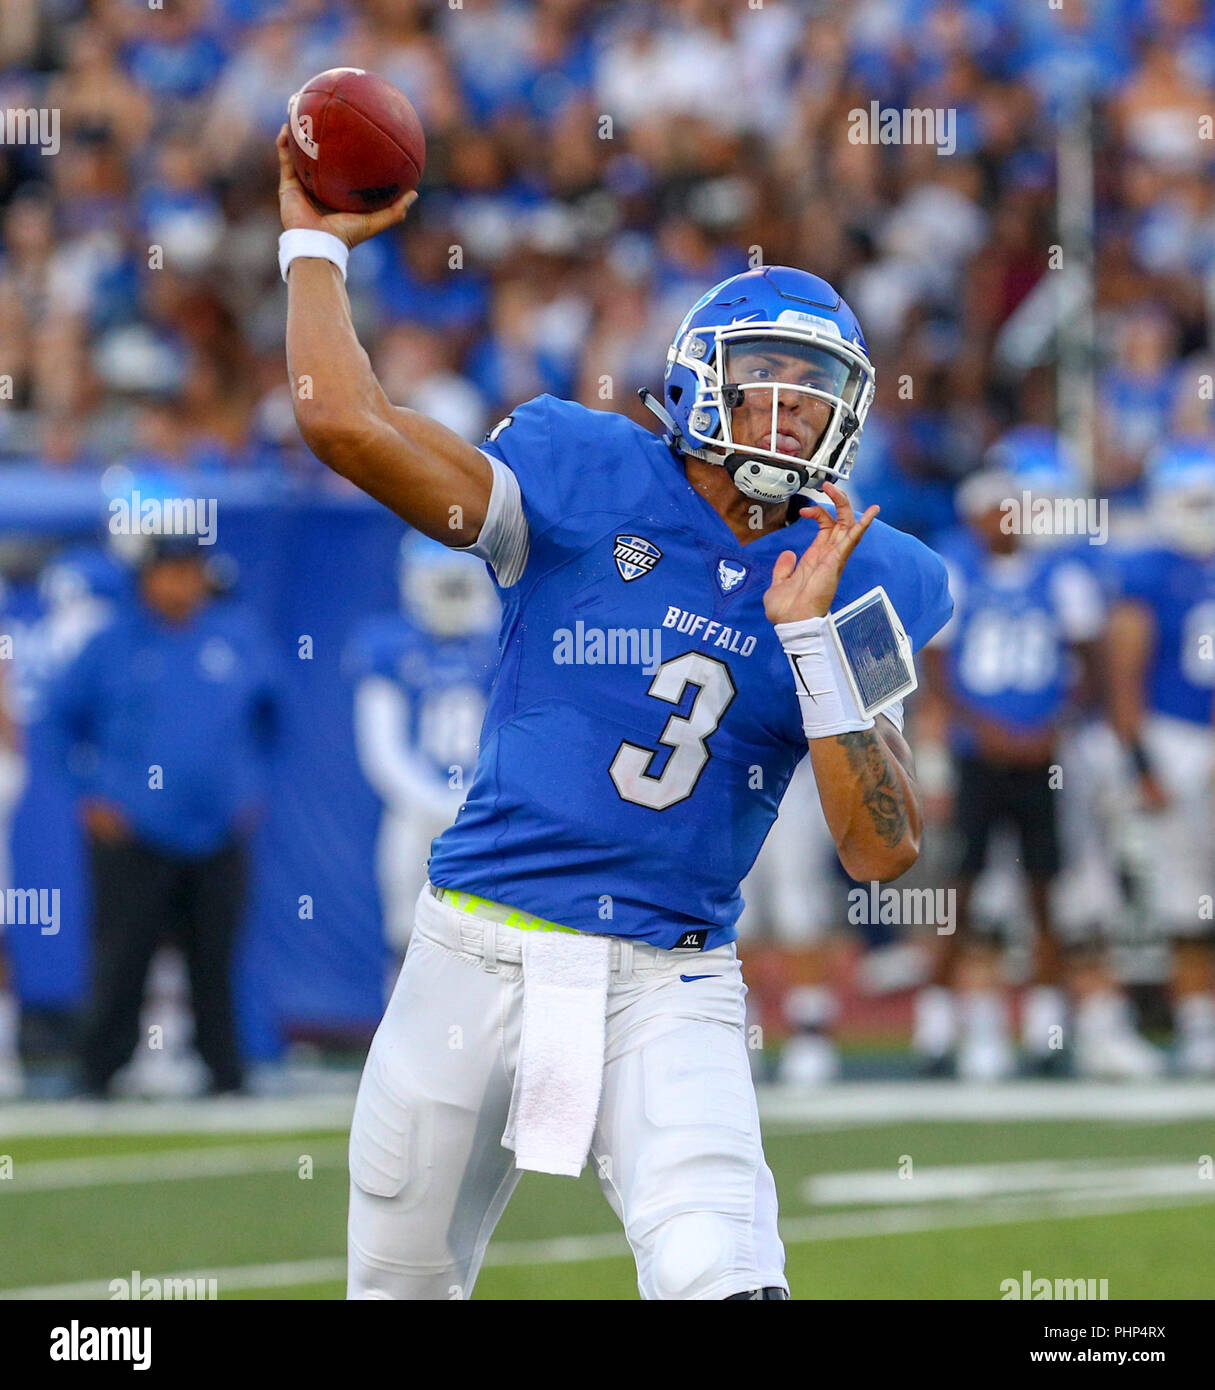 Amherst, USA  1st September 2018  Buffalo Bulls quarterback